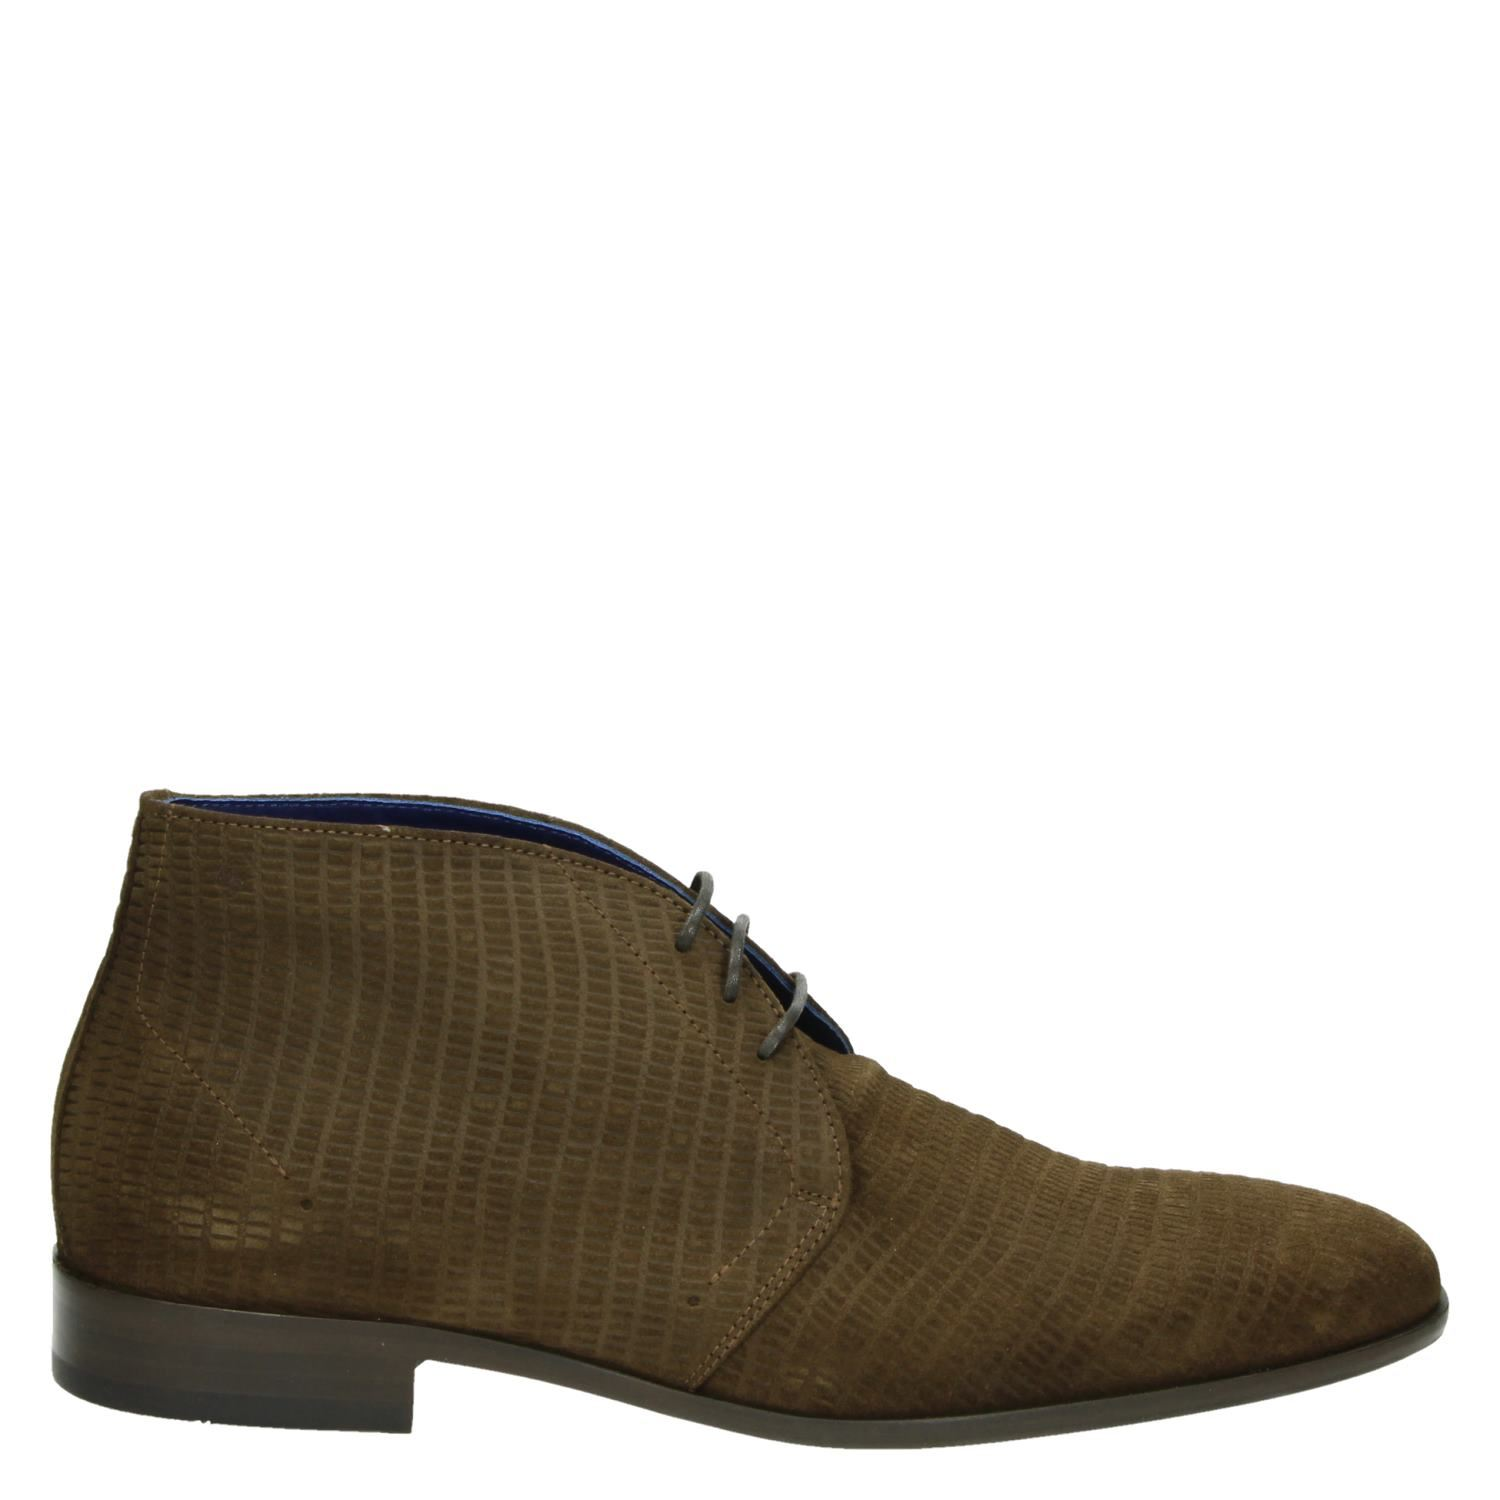 Greve Chaussures À Robe Marron S44Id0FtKz